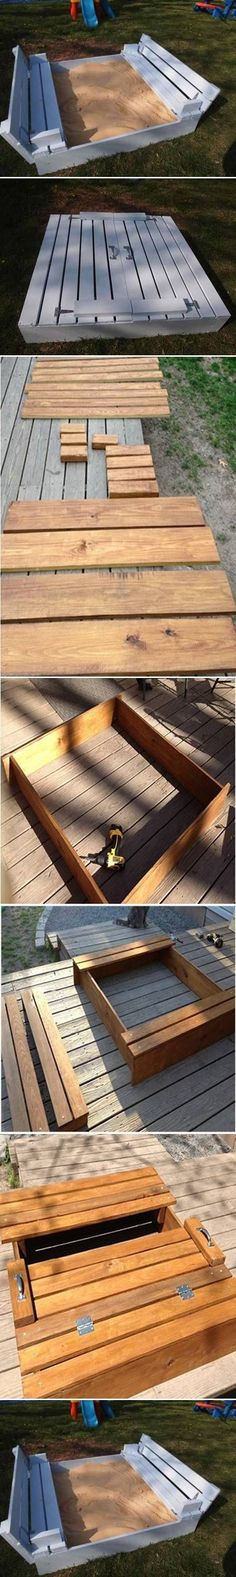 Wood Pallet Sandbox, With Bench Seats That Unfold To Cover The Sandbox!  LOVE THIS! I Hate Sandboxes Bc Itu0027s Like An Outdoor Litter Box For Wild  Critters.